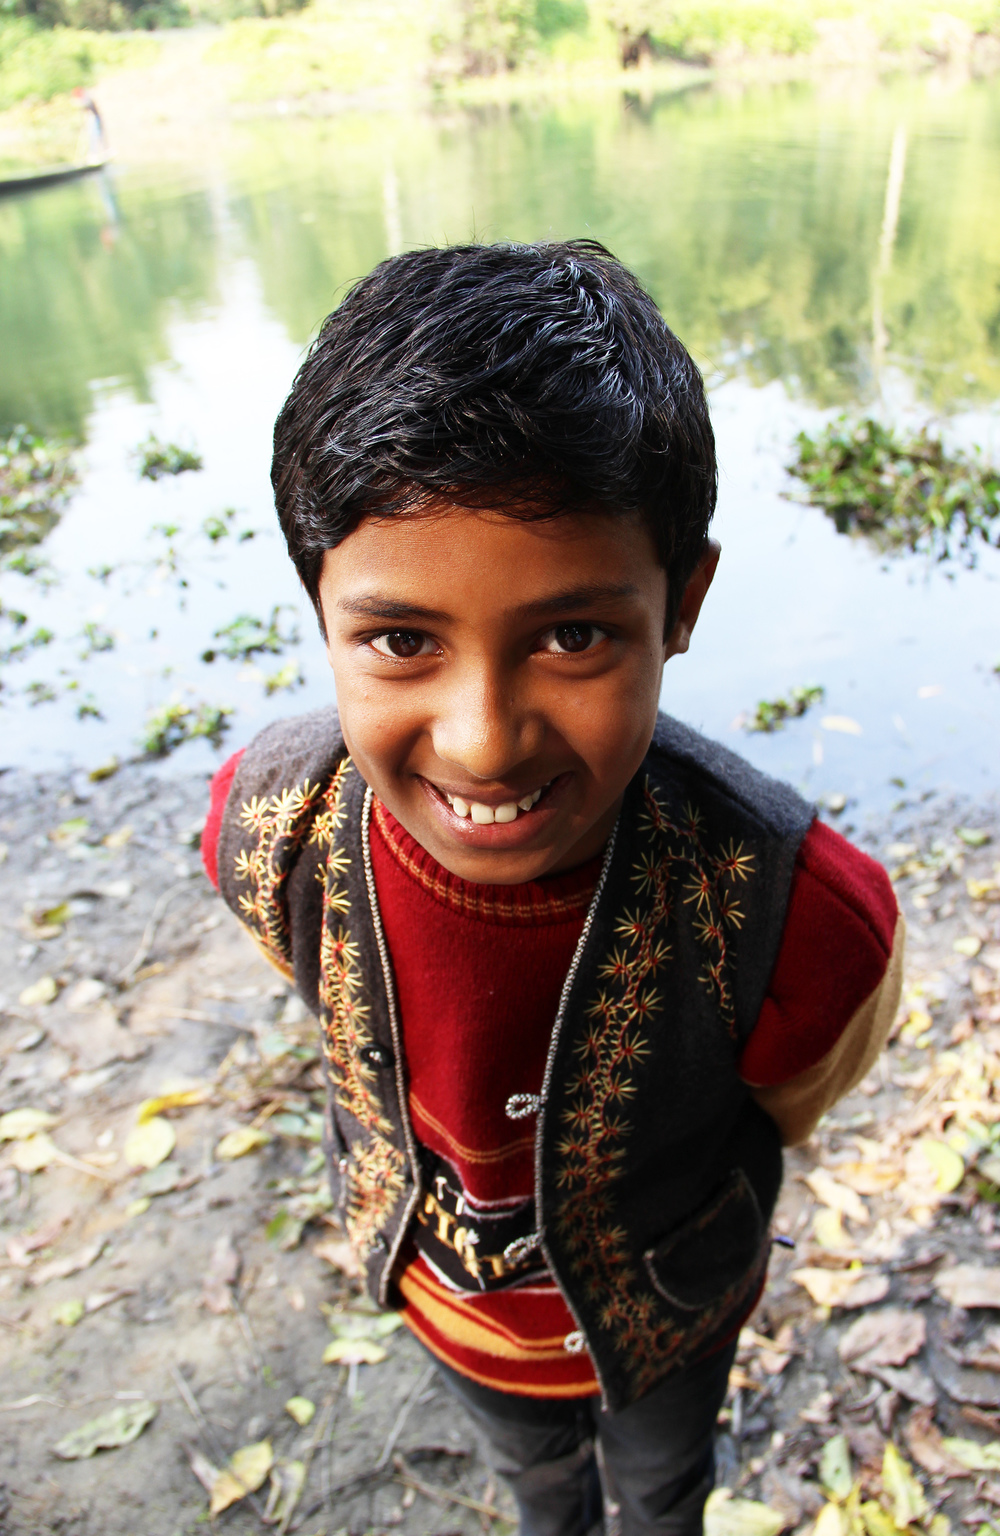 Amlan, son of Bishnu Das, along 'his' river, Majuli Island, January 2014 © Edith Nicol